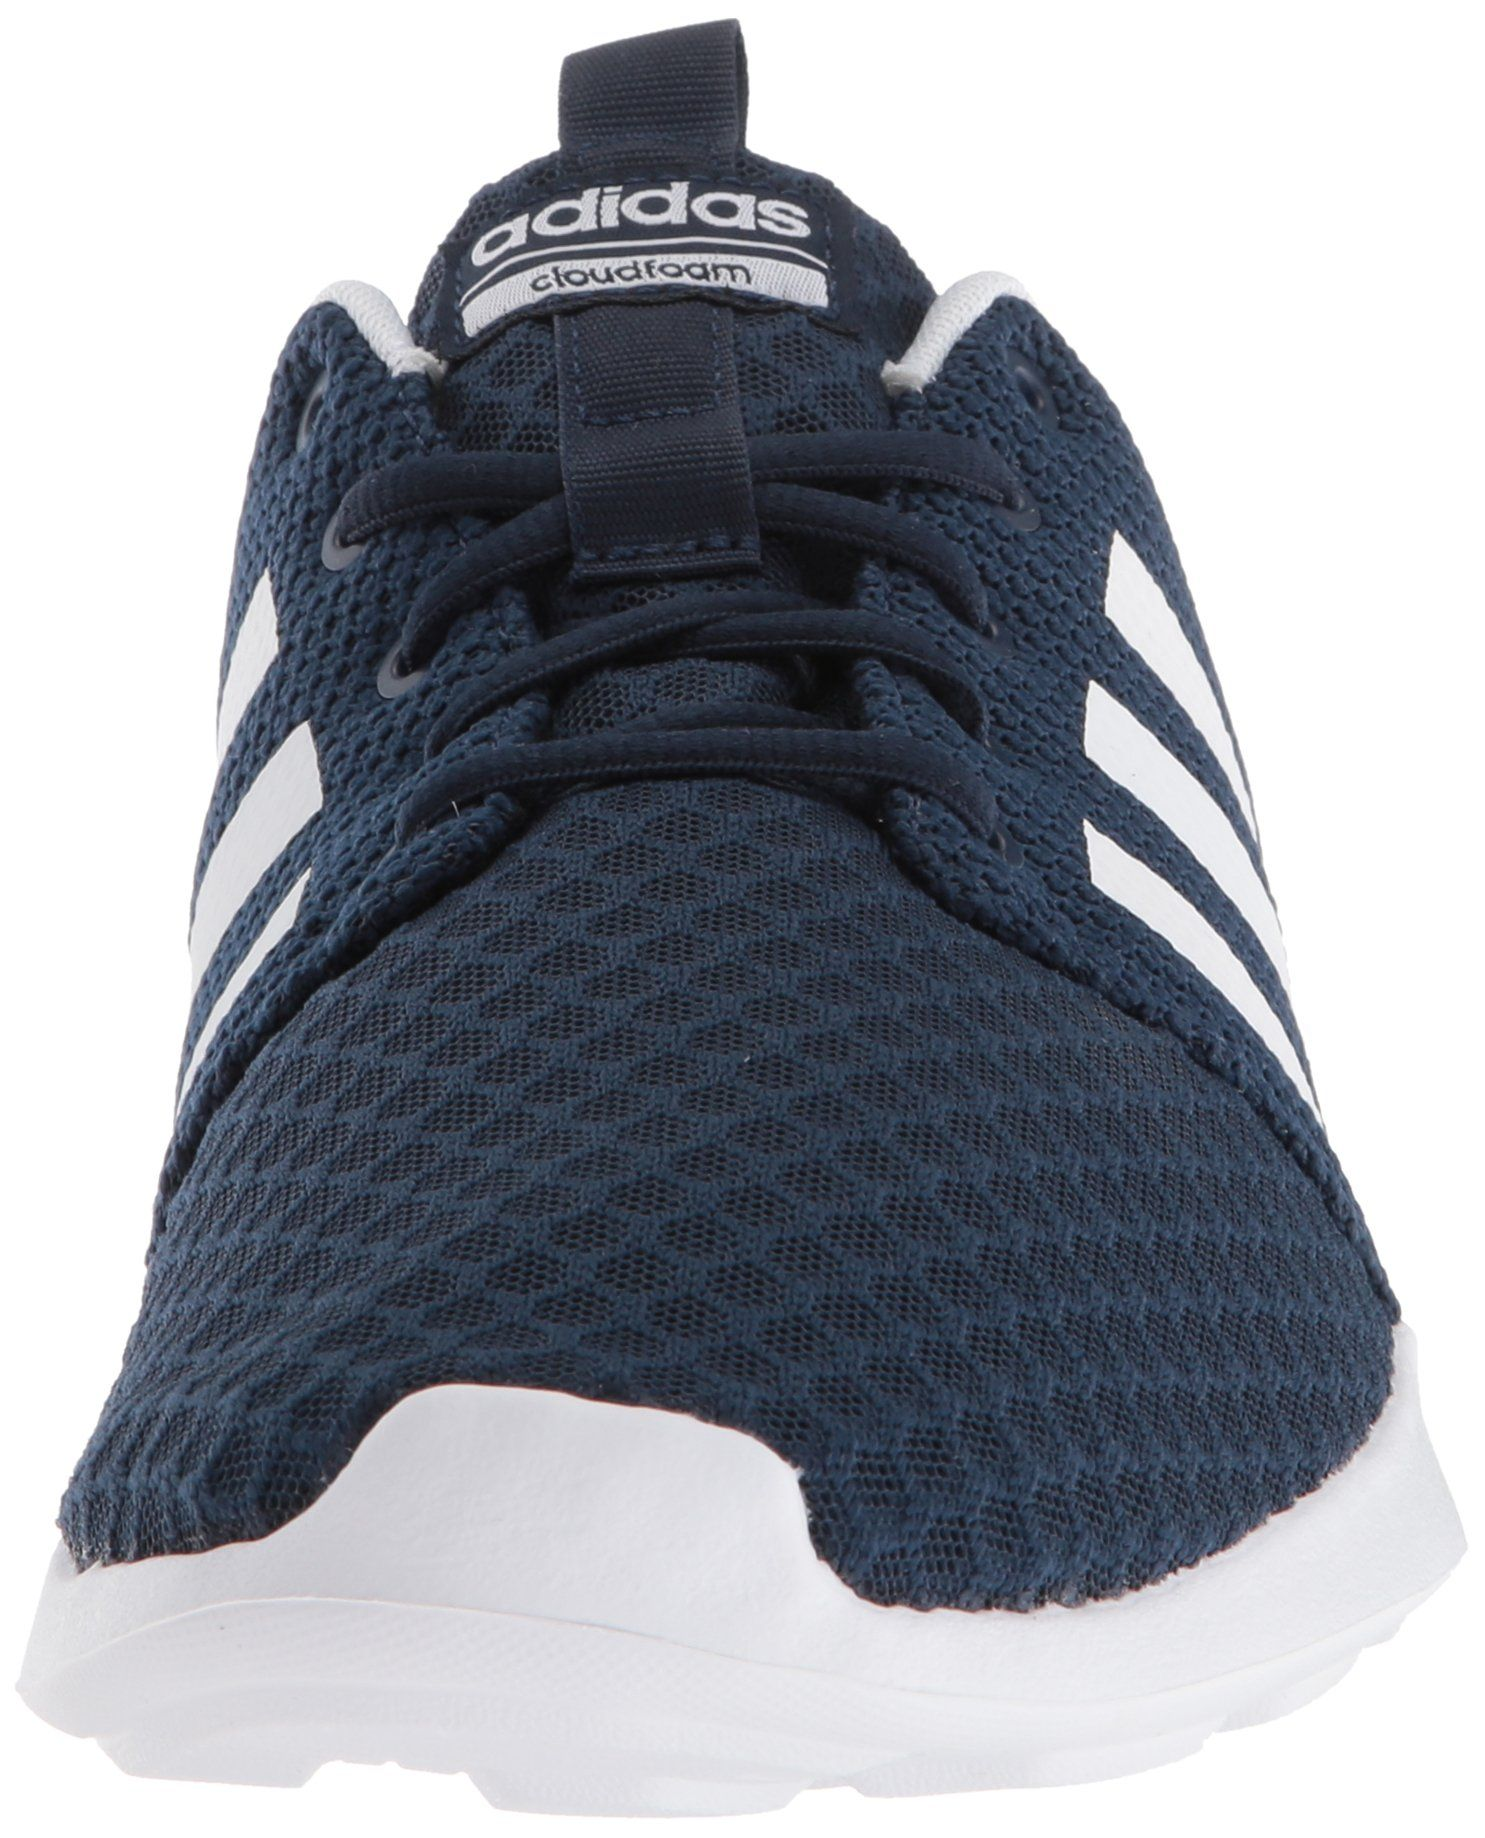 adidas Mens CF Swift Racer Sneaker Collegiate Navy FTWR White 10.5 M US --  Click image to review more details-affiliate link.  adidaswomensrunningshoes c75d54176